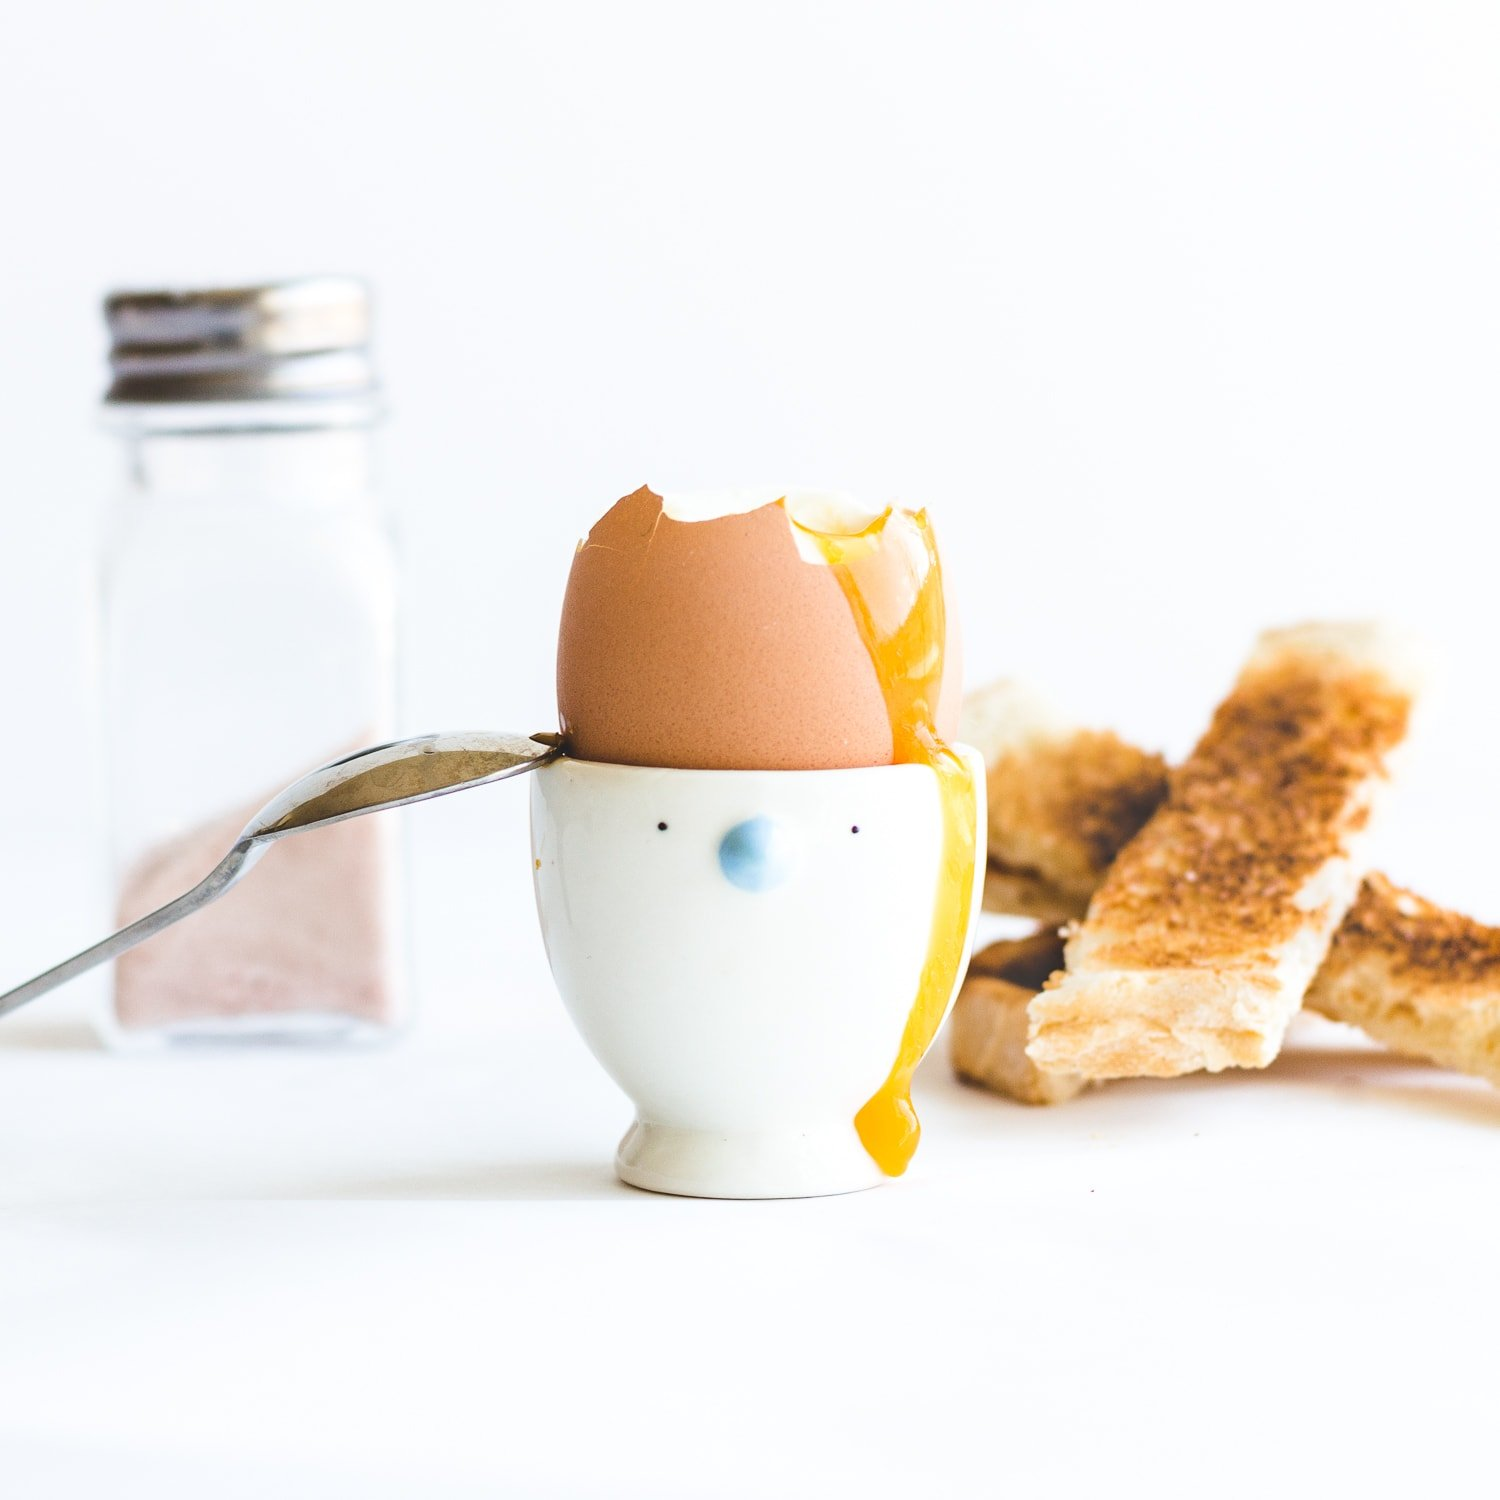 Soft boiled egg in egg cup with top off, yolk running down the side and spoon leaning on the edge.  Pile of toast soldiers and salt shaker in the background.